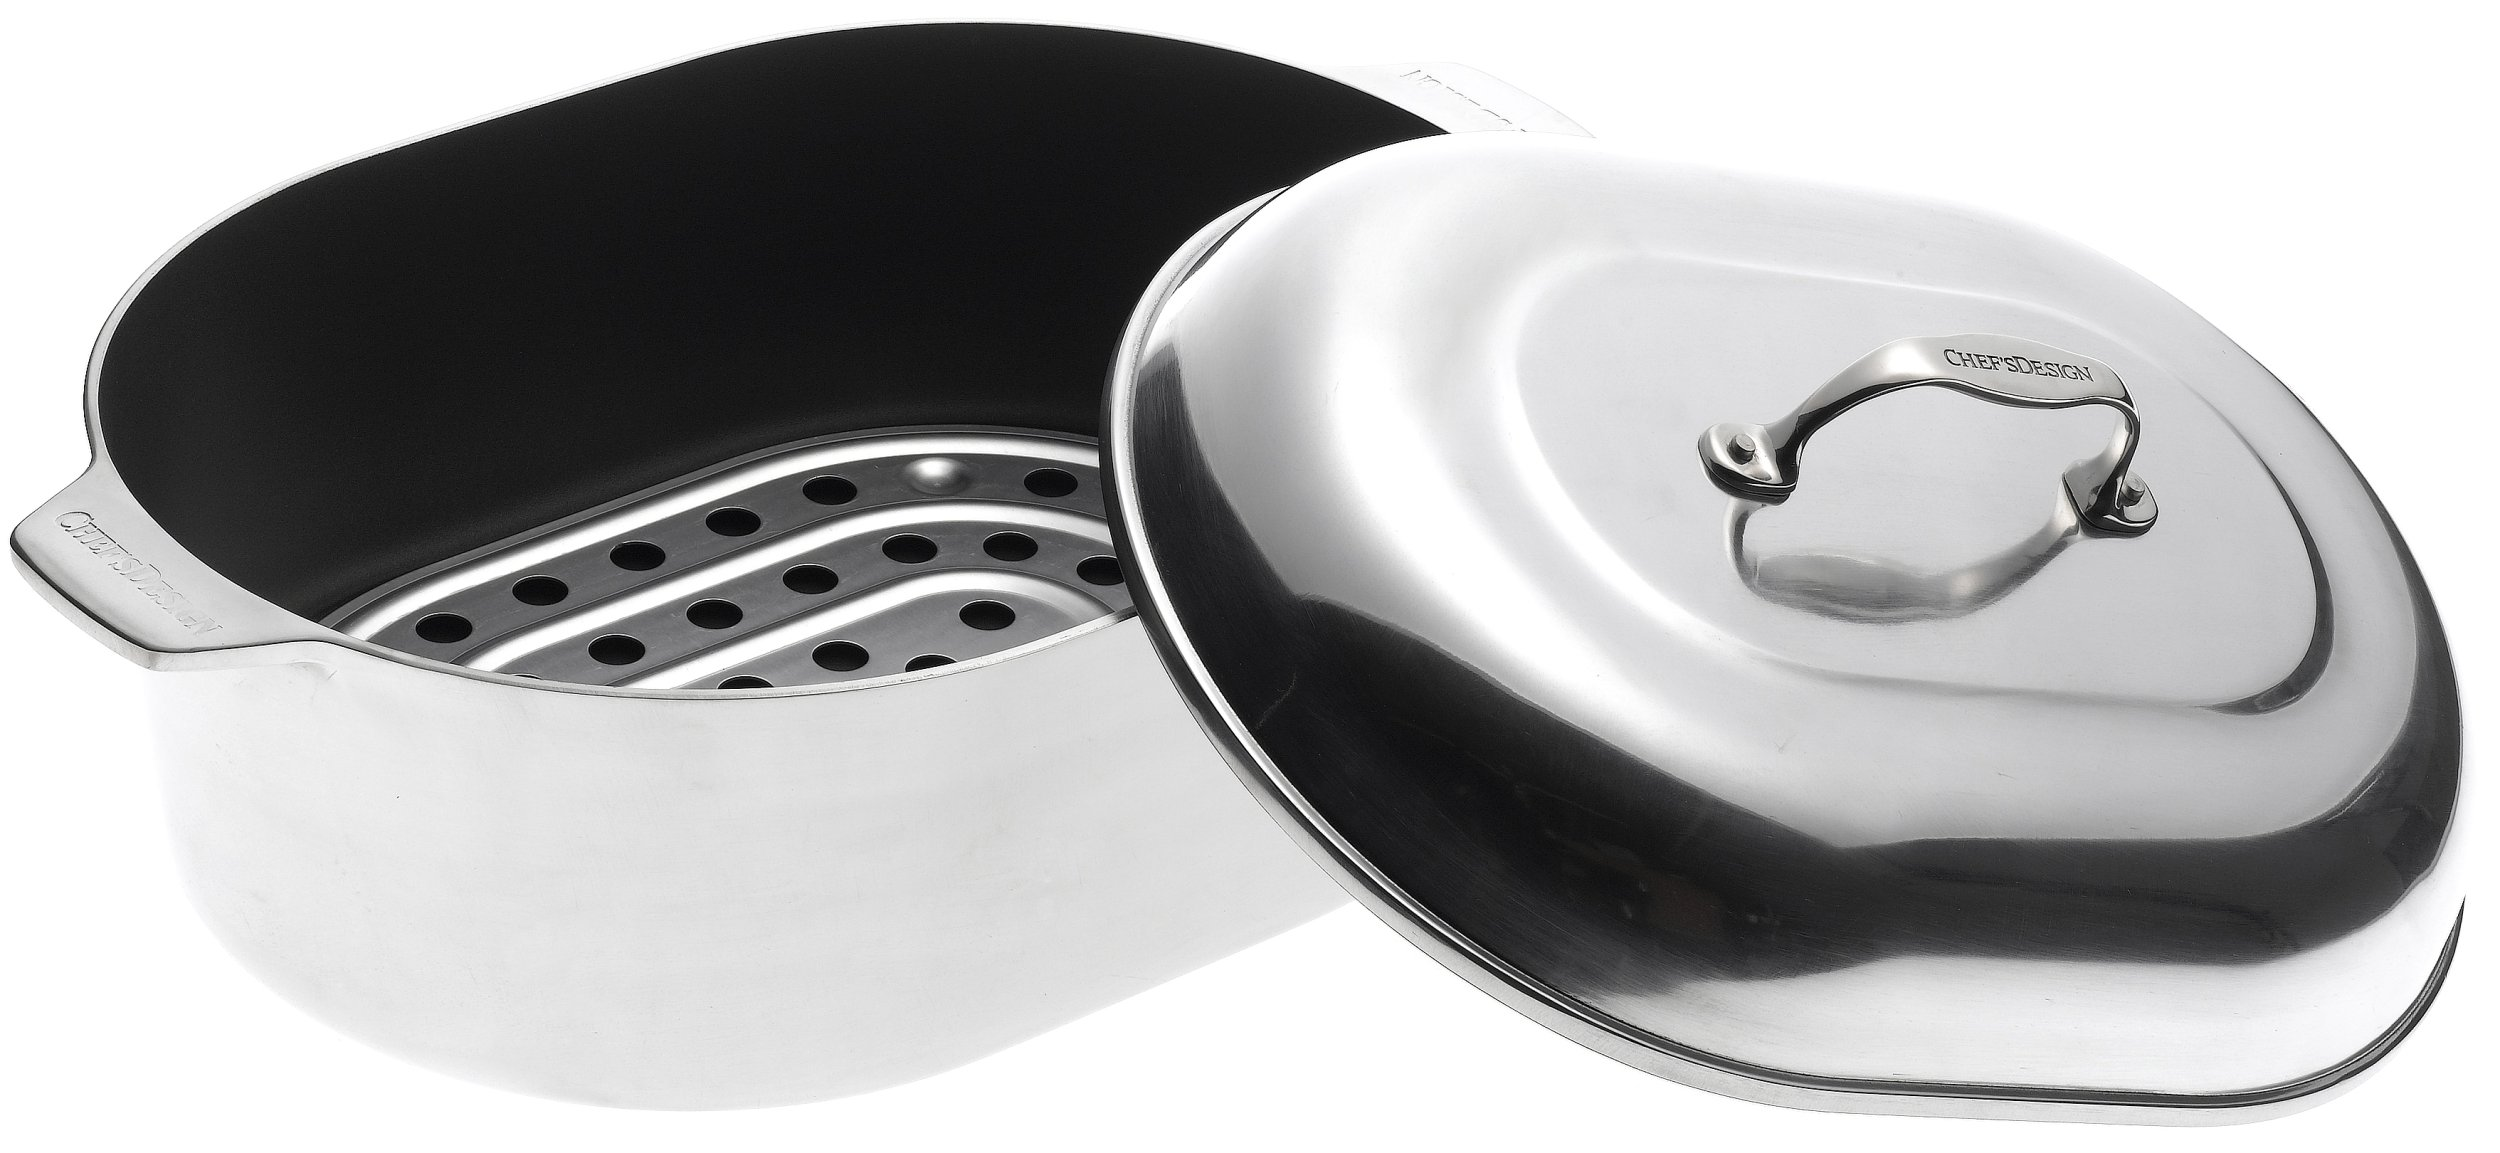 Chef's Design 13-1/2-Quart Covered Oval Roaster with Nonstick Interior